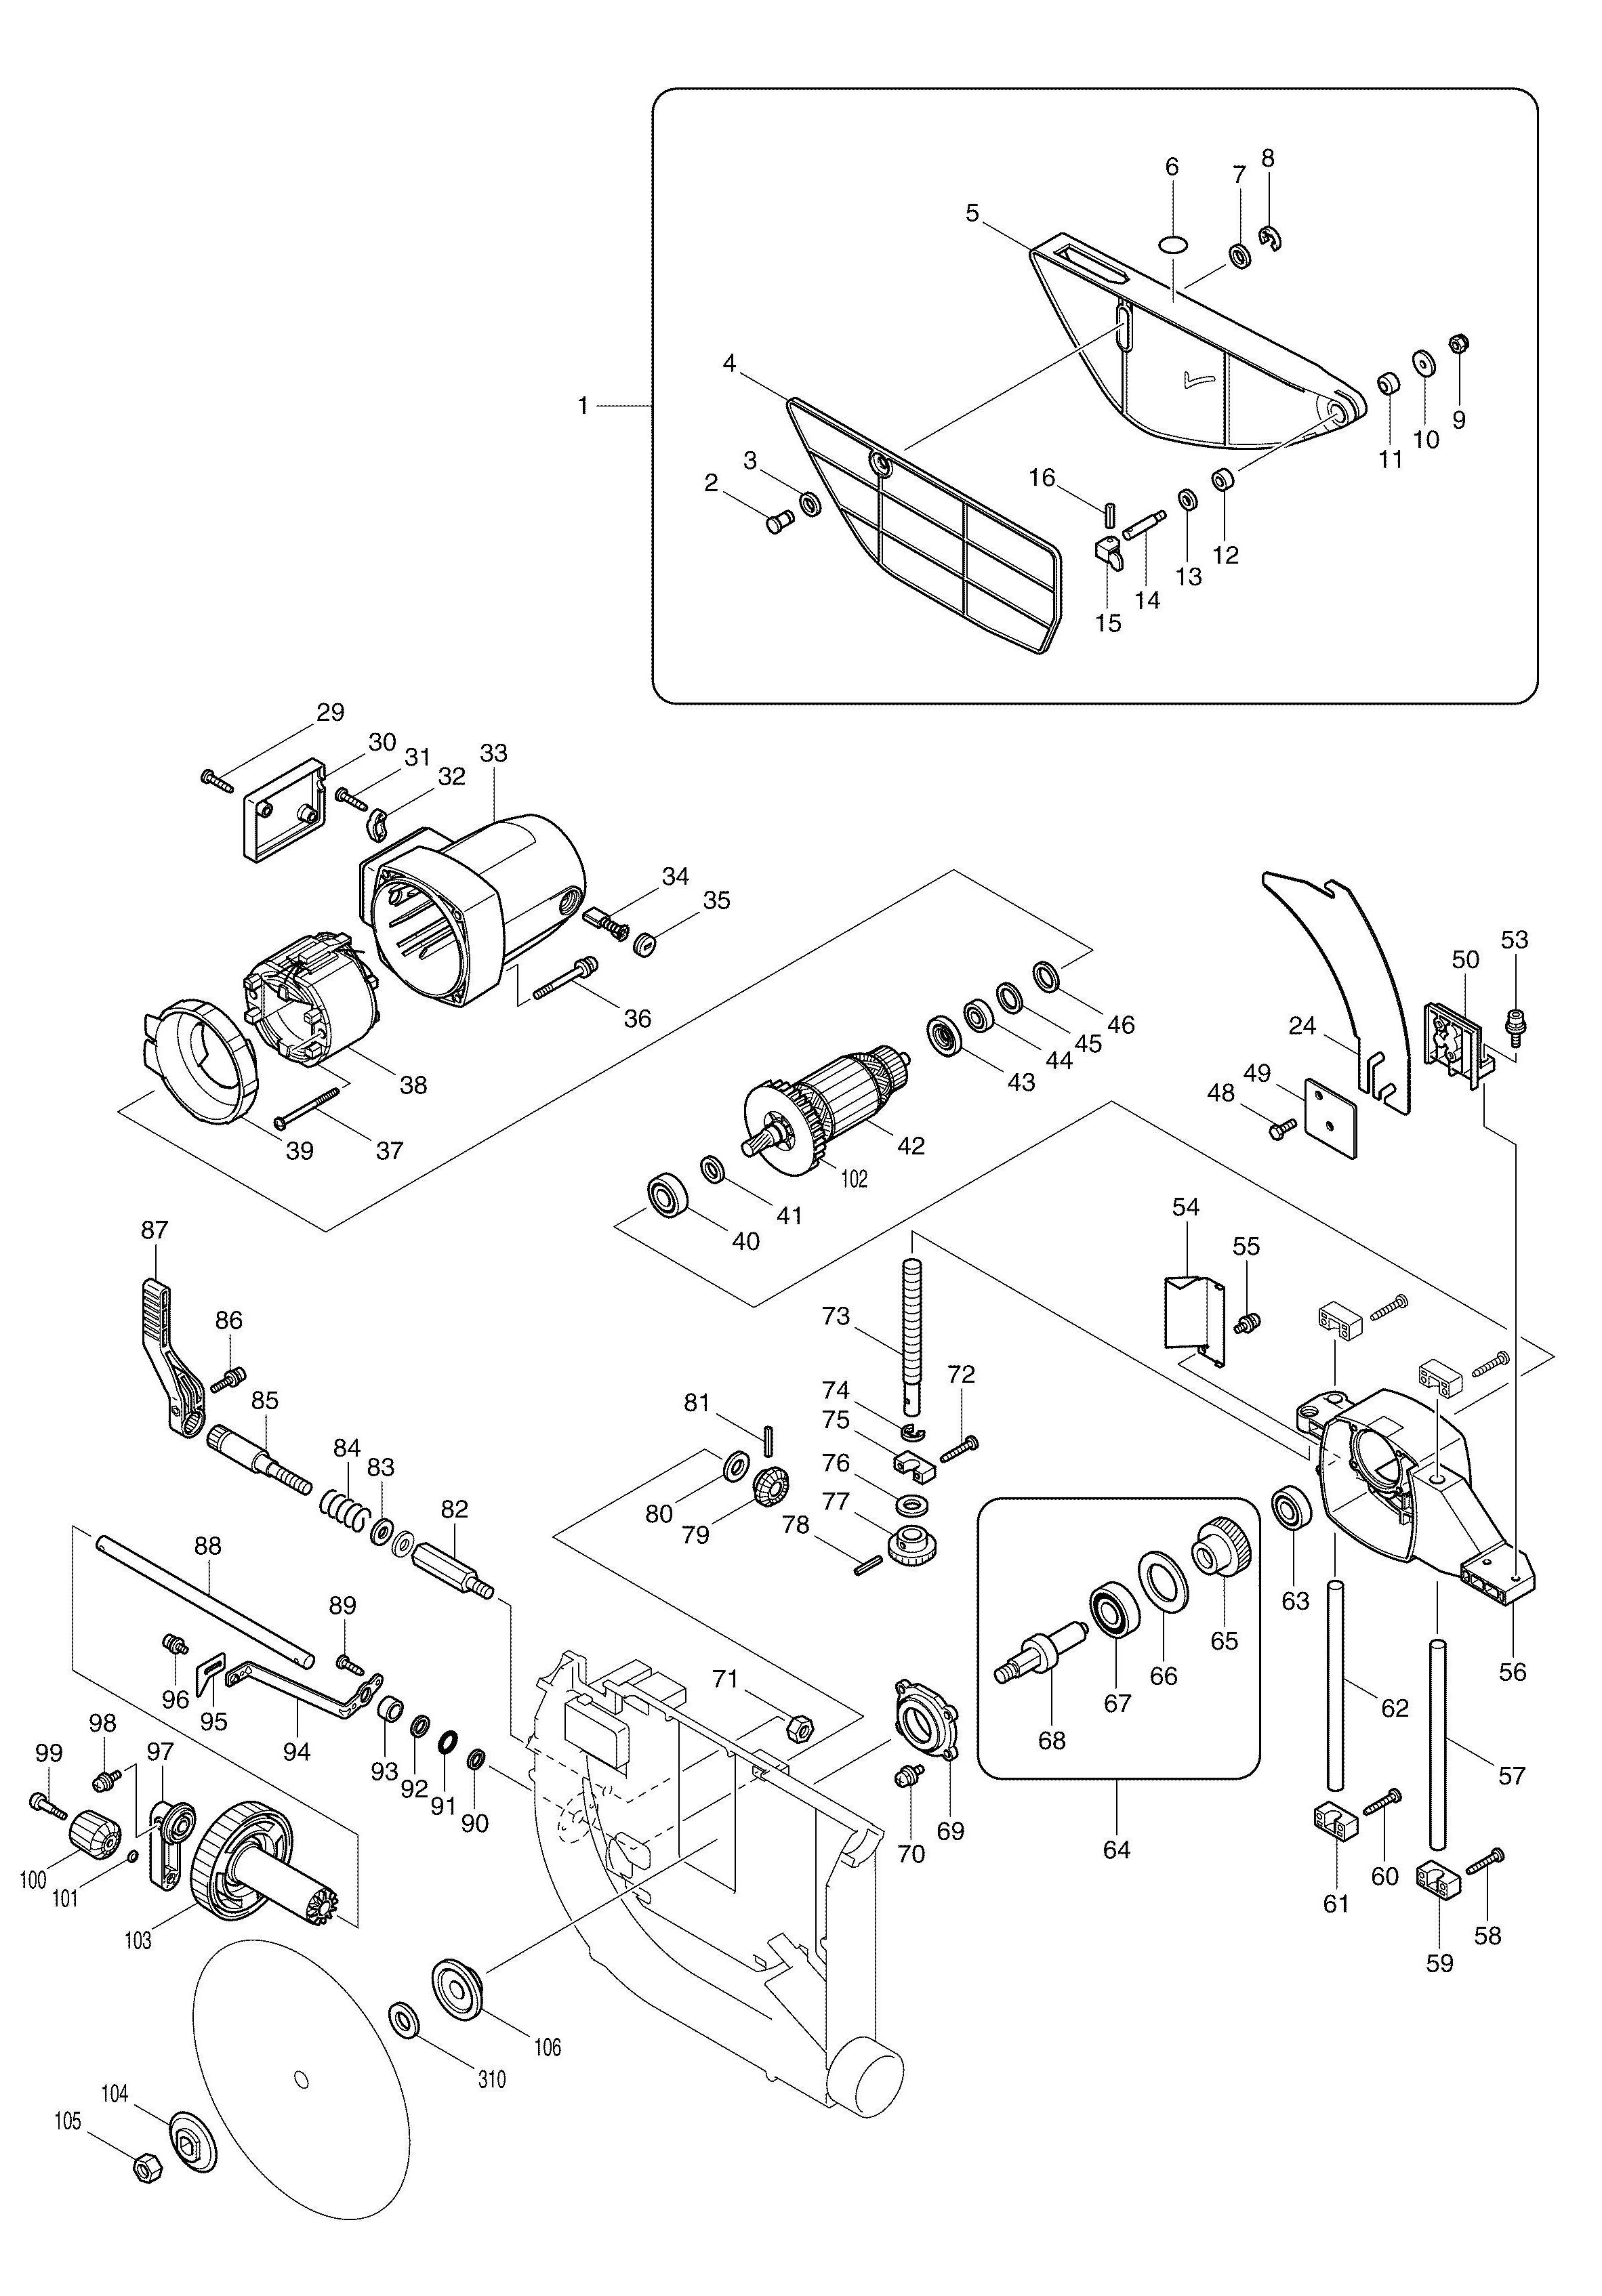 Makita table saw diagram wiring library spares for makita 2704 table saw spare 2704 from power tool centre rh ptctools co uk makita table saw wiring diagram makita table saw wiring diagram keyboard keysfo Choice Image